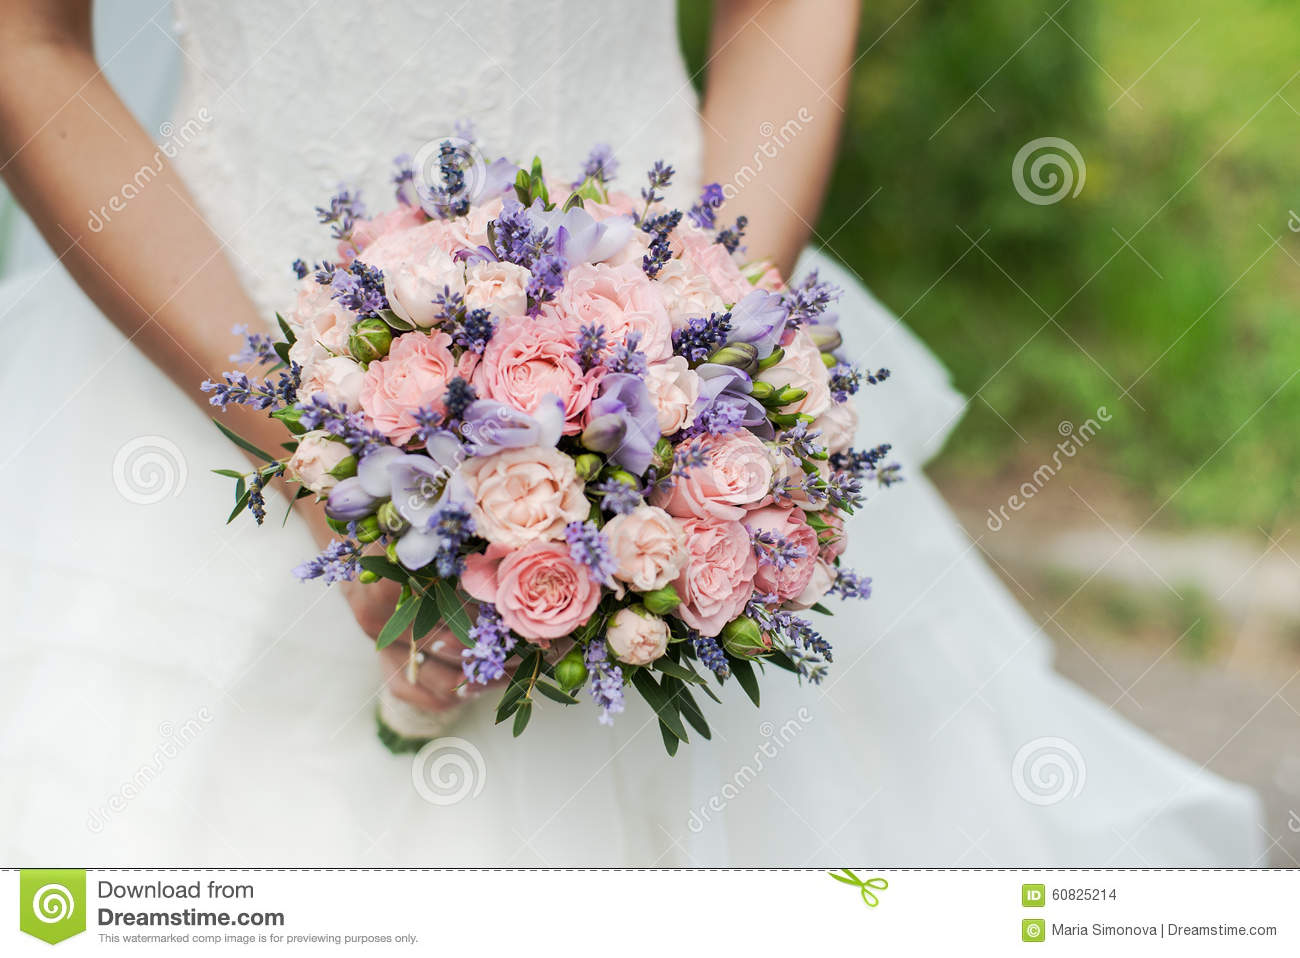 wedding bouquet of lavender roses and peonies stock. Black Bedroom Furniture Sets. Home Design Ideas